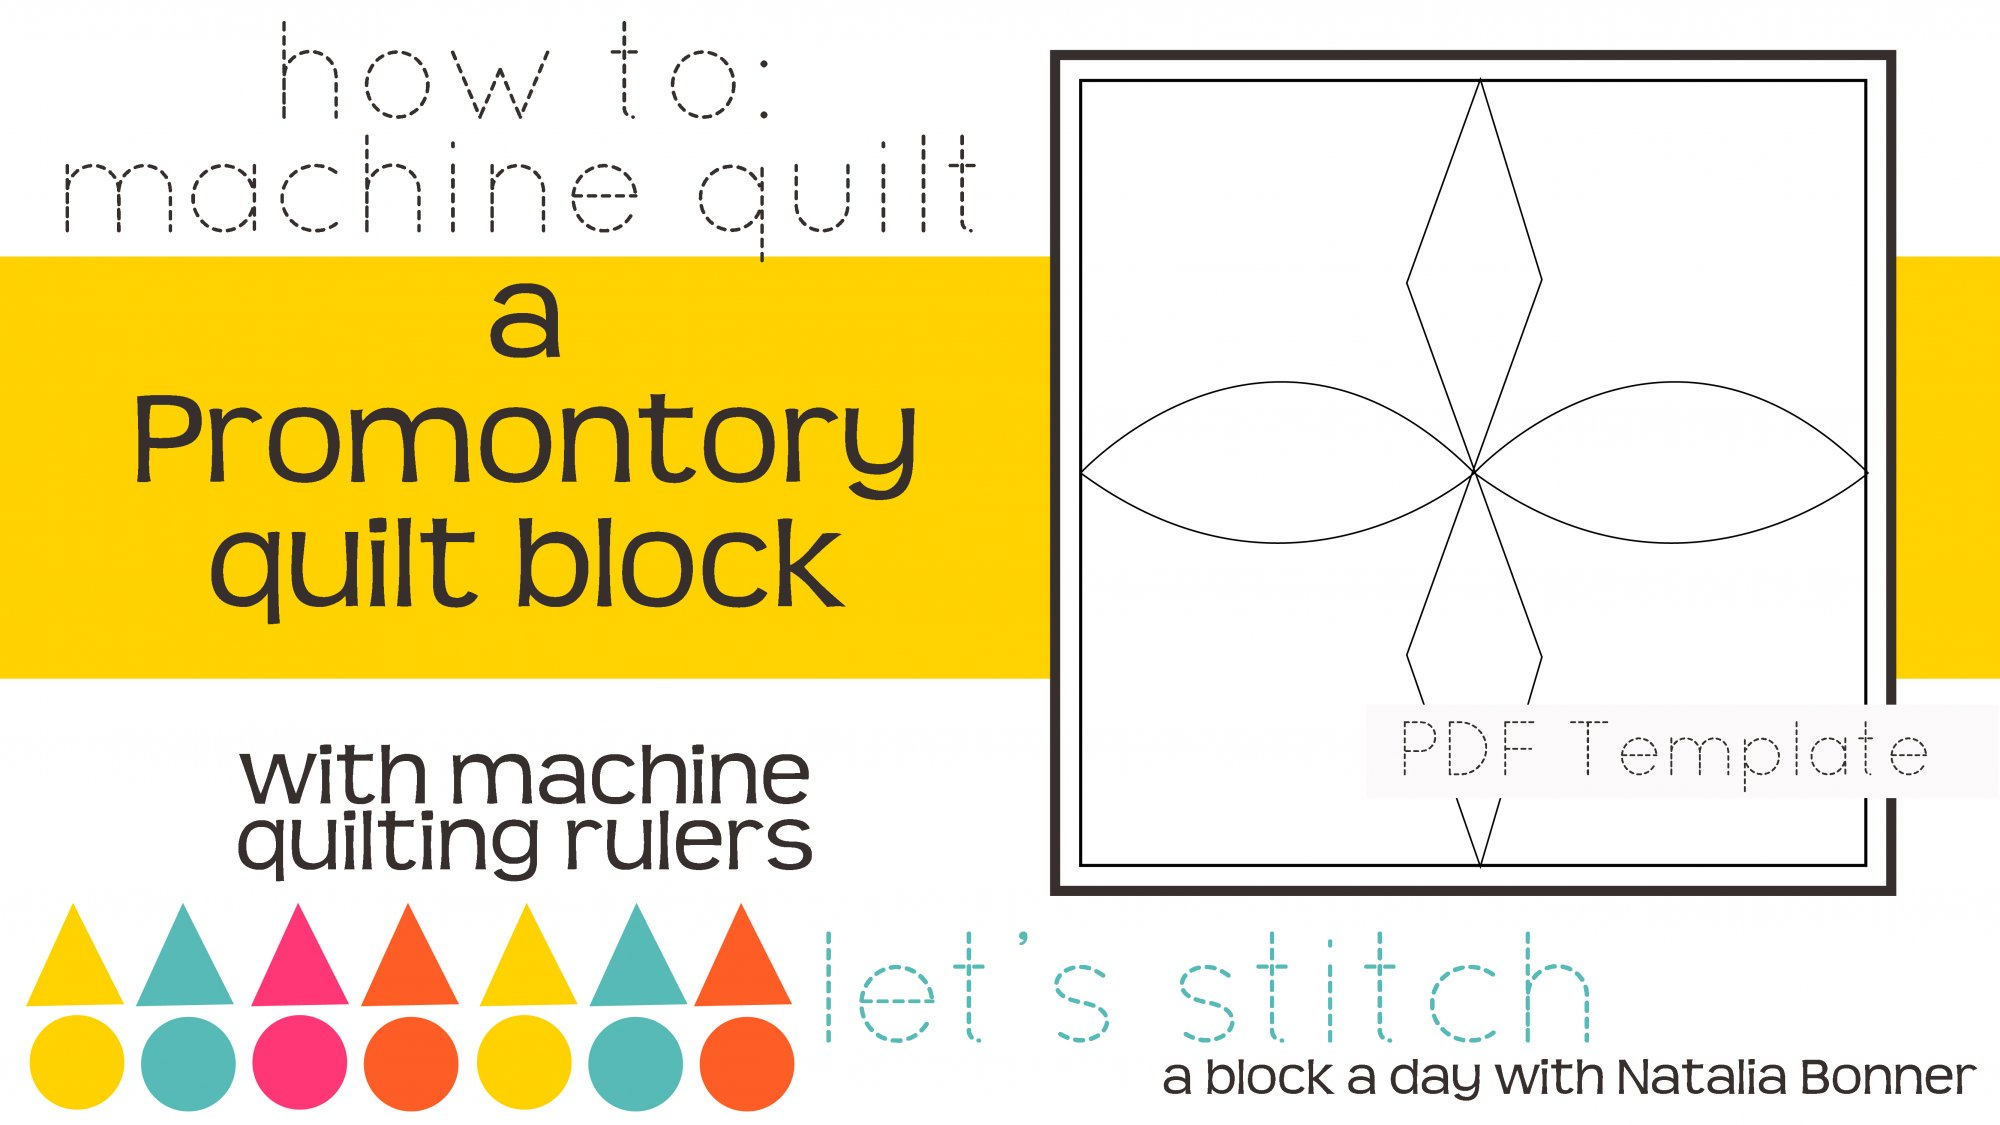 Let's Stitch - A Block a Day With Natalia Bonner - PDF - Promontory